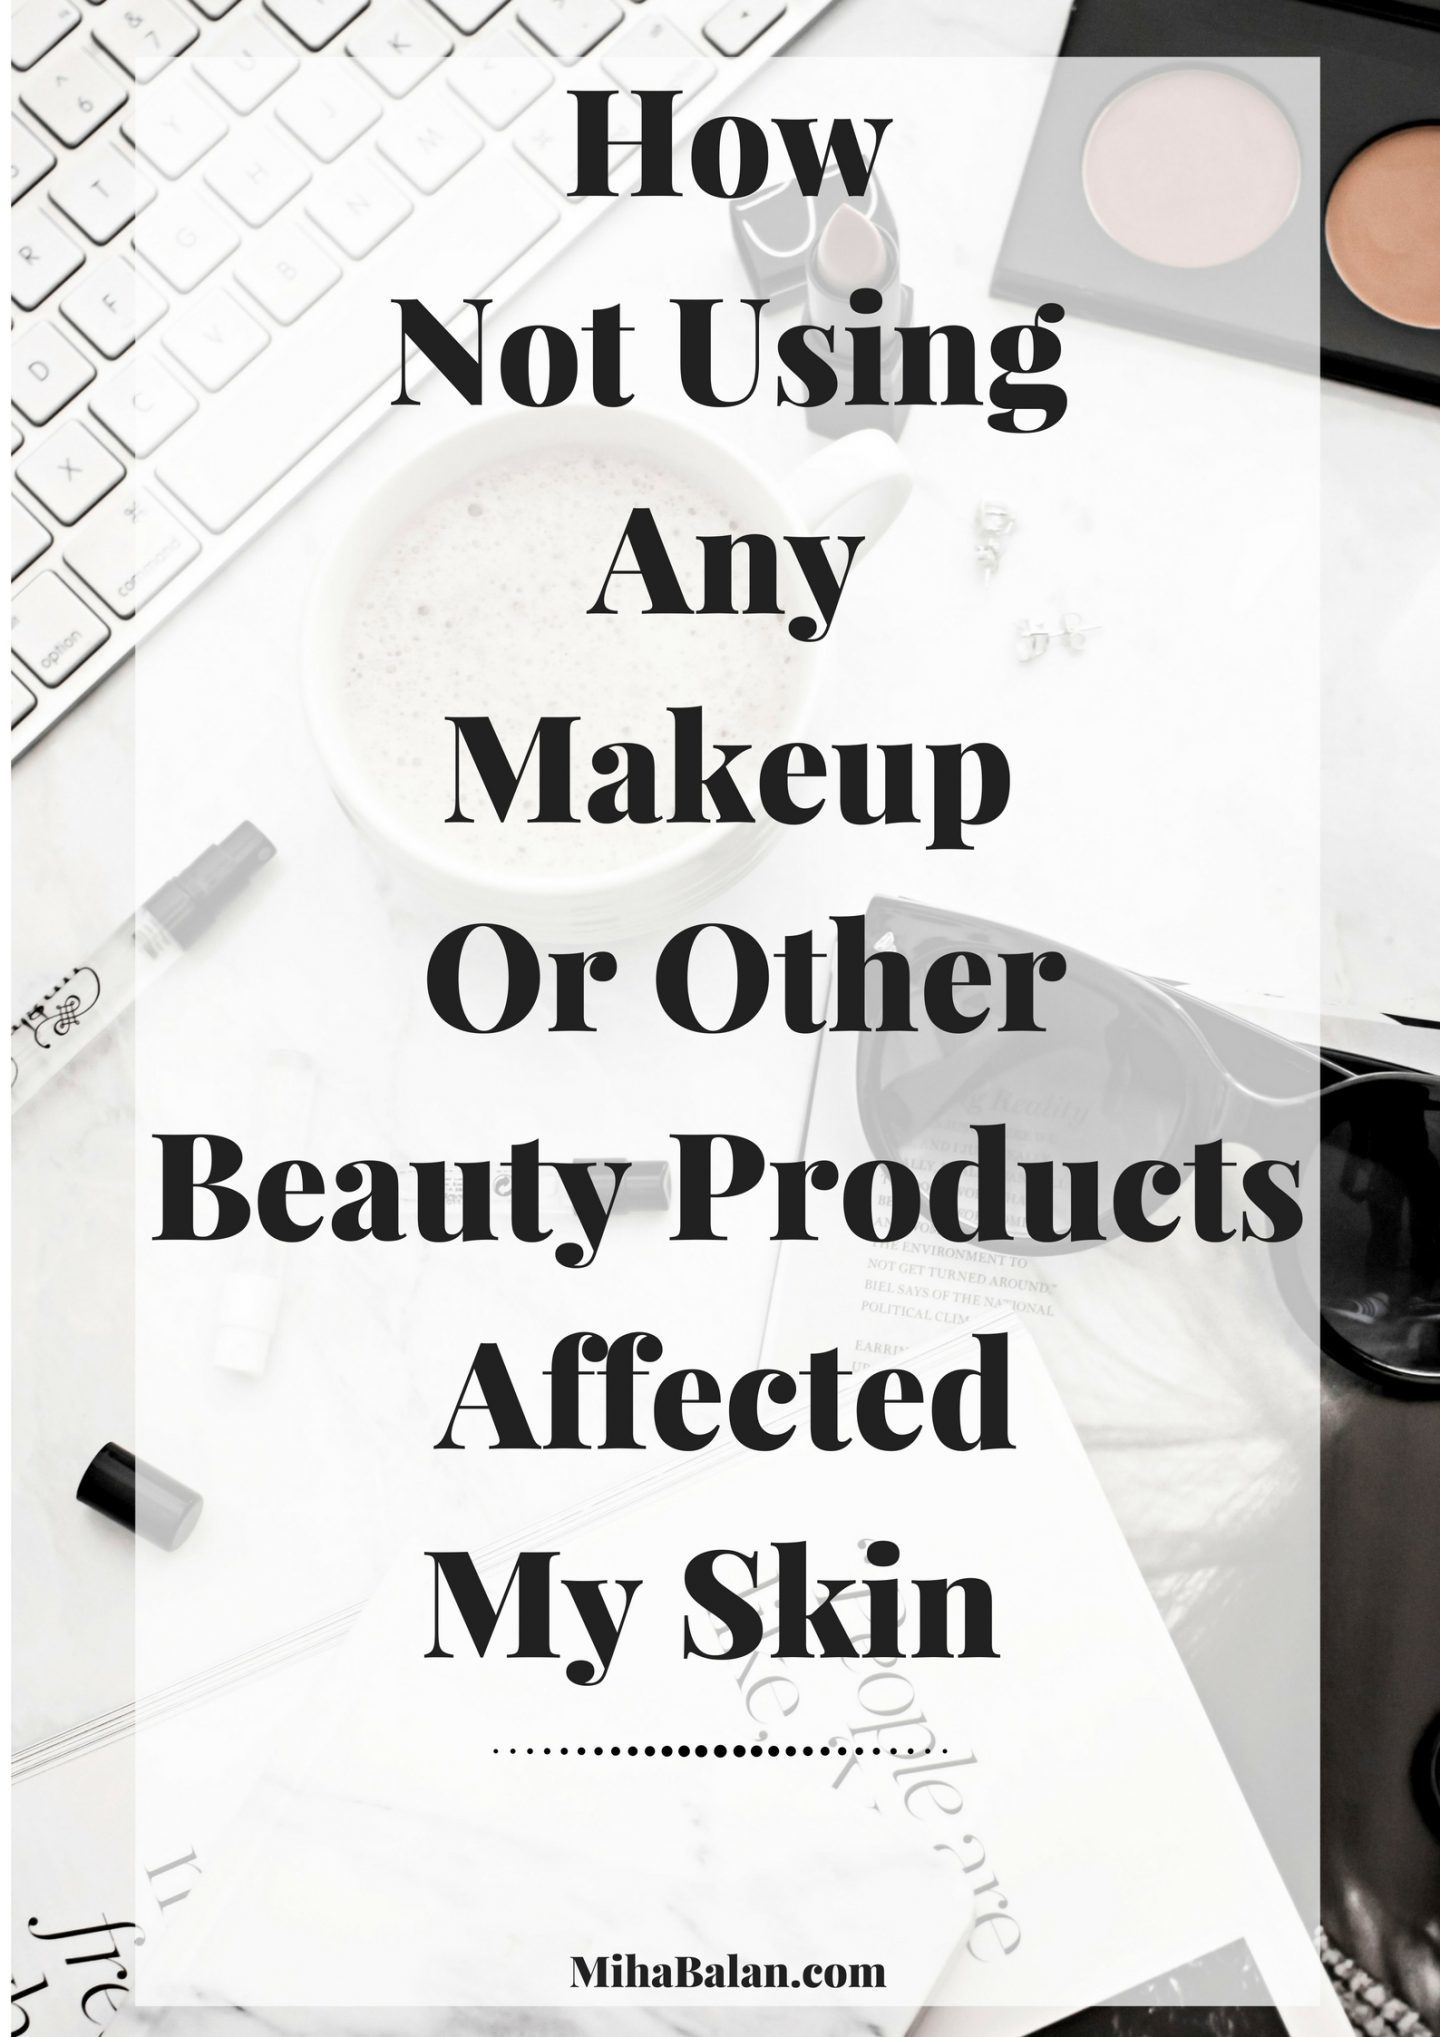 How Not Using Any Makeup Or OtherBeauty ProductsAffected My Skin